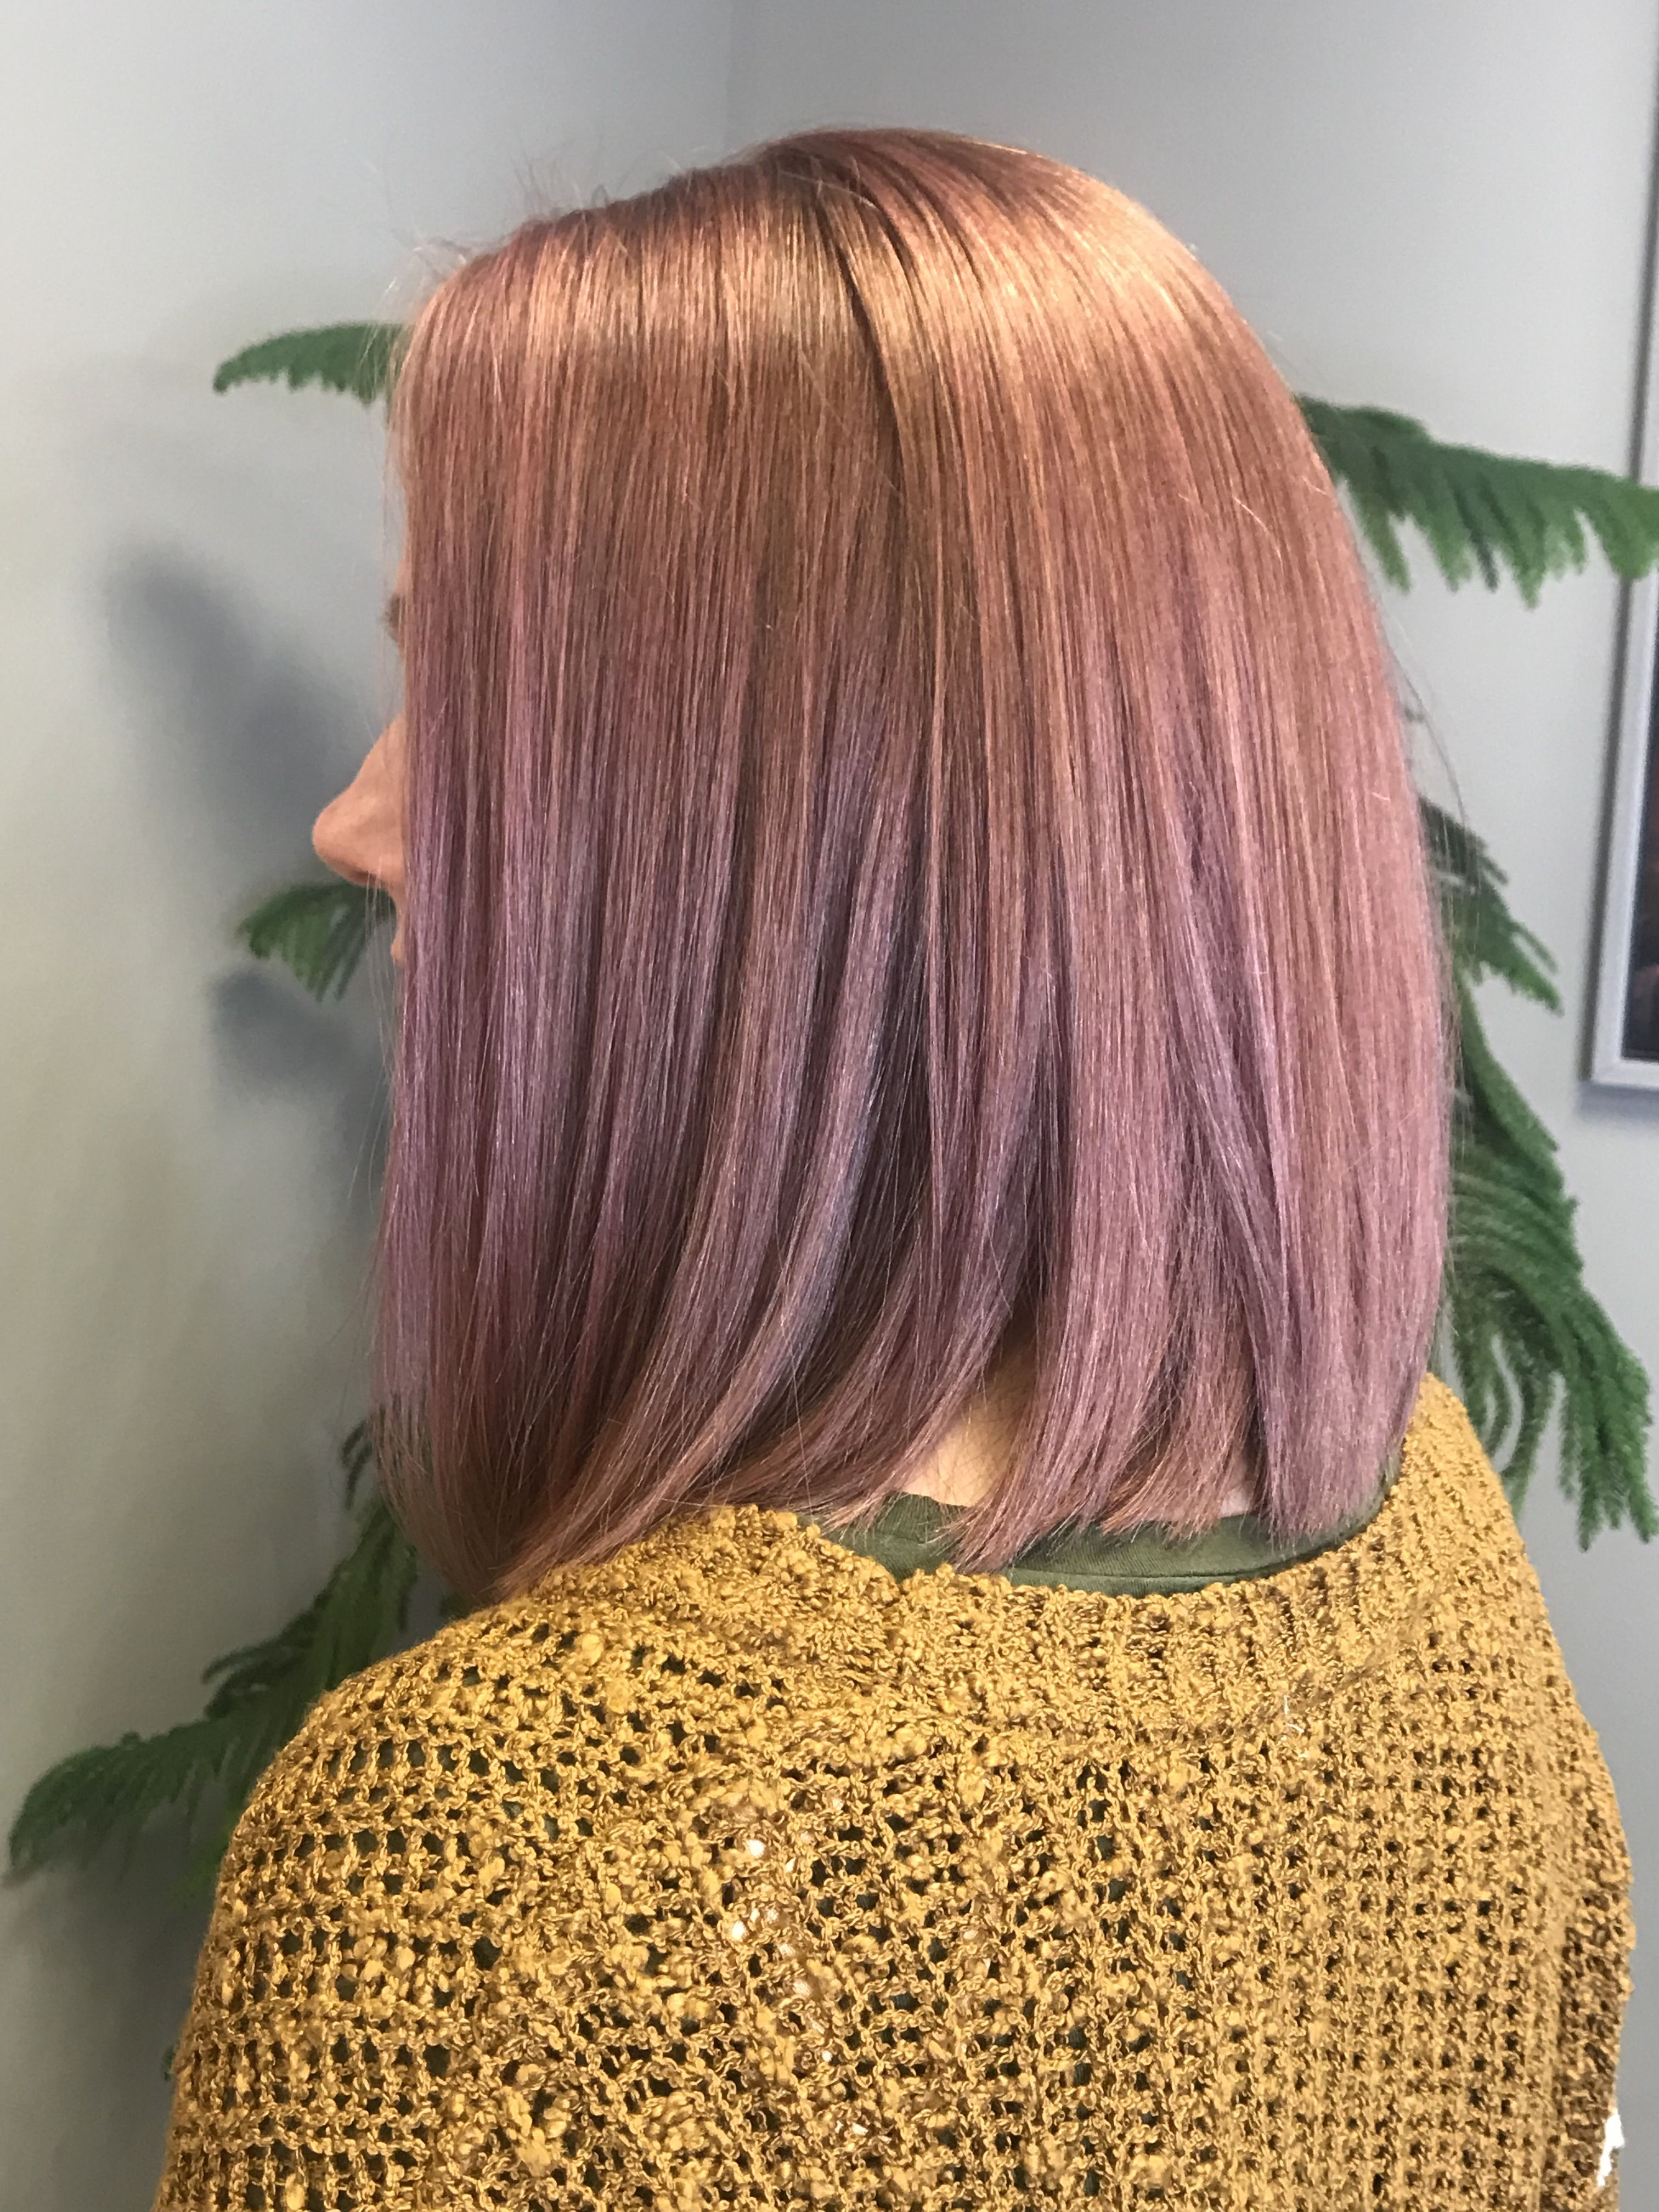 Rose Gold Hair Color By Ashley Gossman At Loft Salon In Sioux Falls South Dakota Hair Color Rose Gold Hair Color Hair